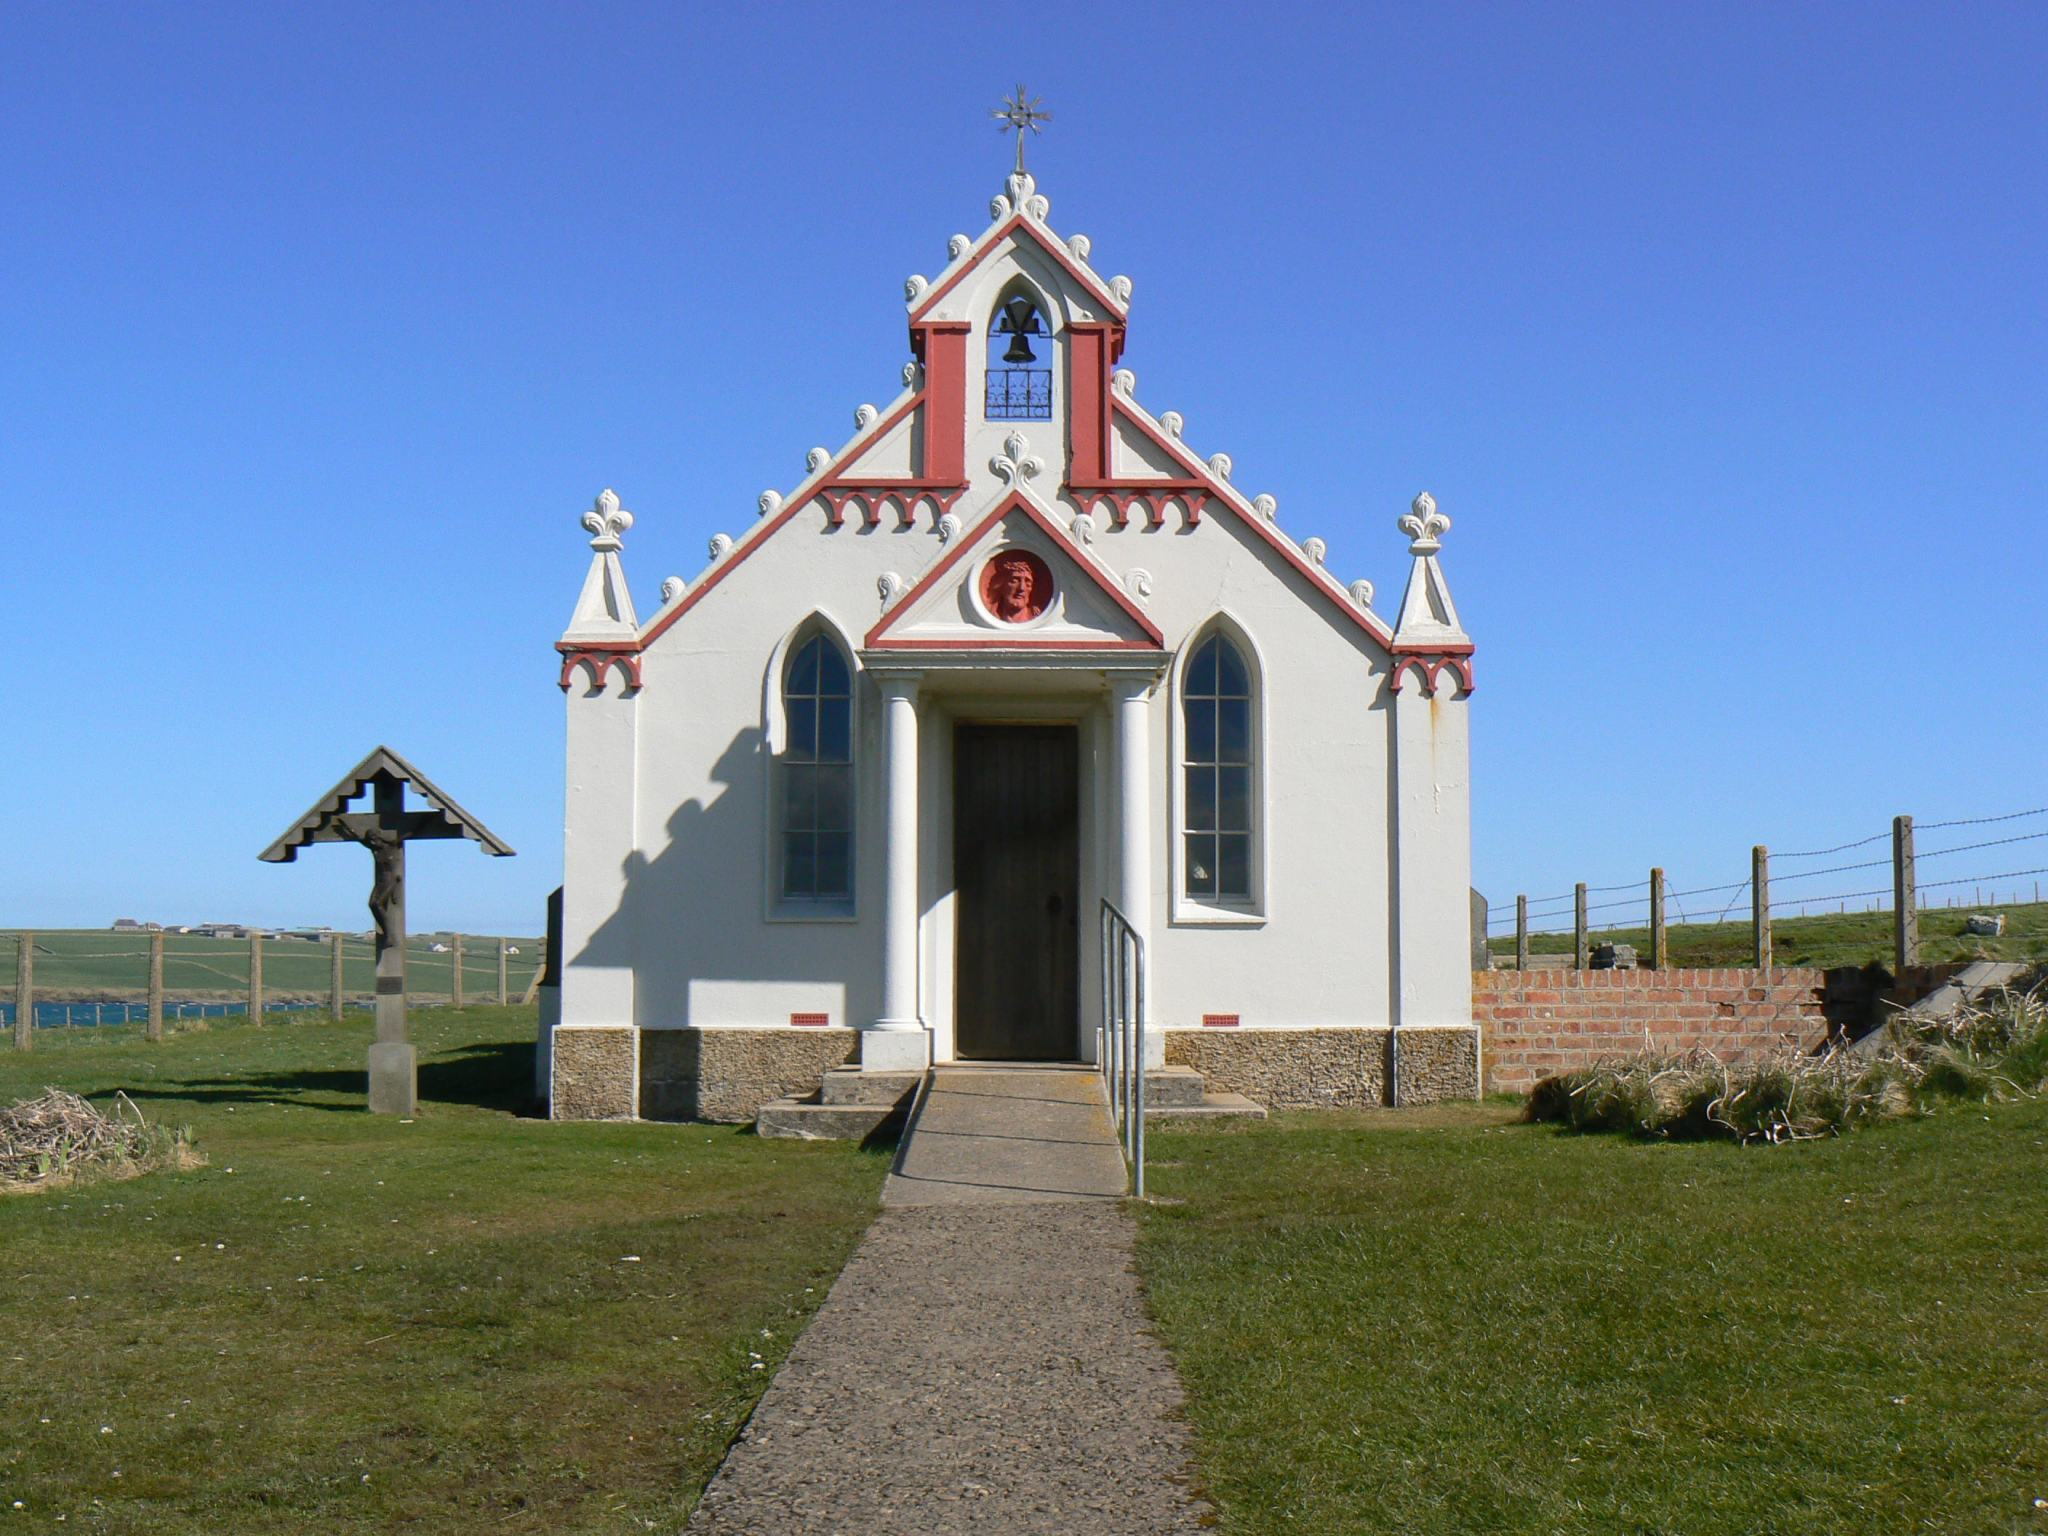 Orkney's Italian Chapel: the True Story of an Icon. An illustrated talk with author Philip Paris